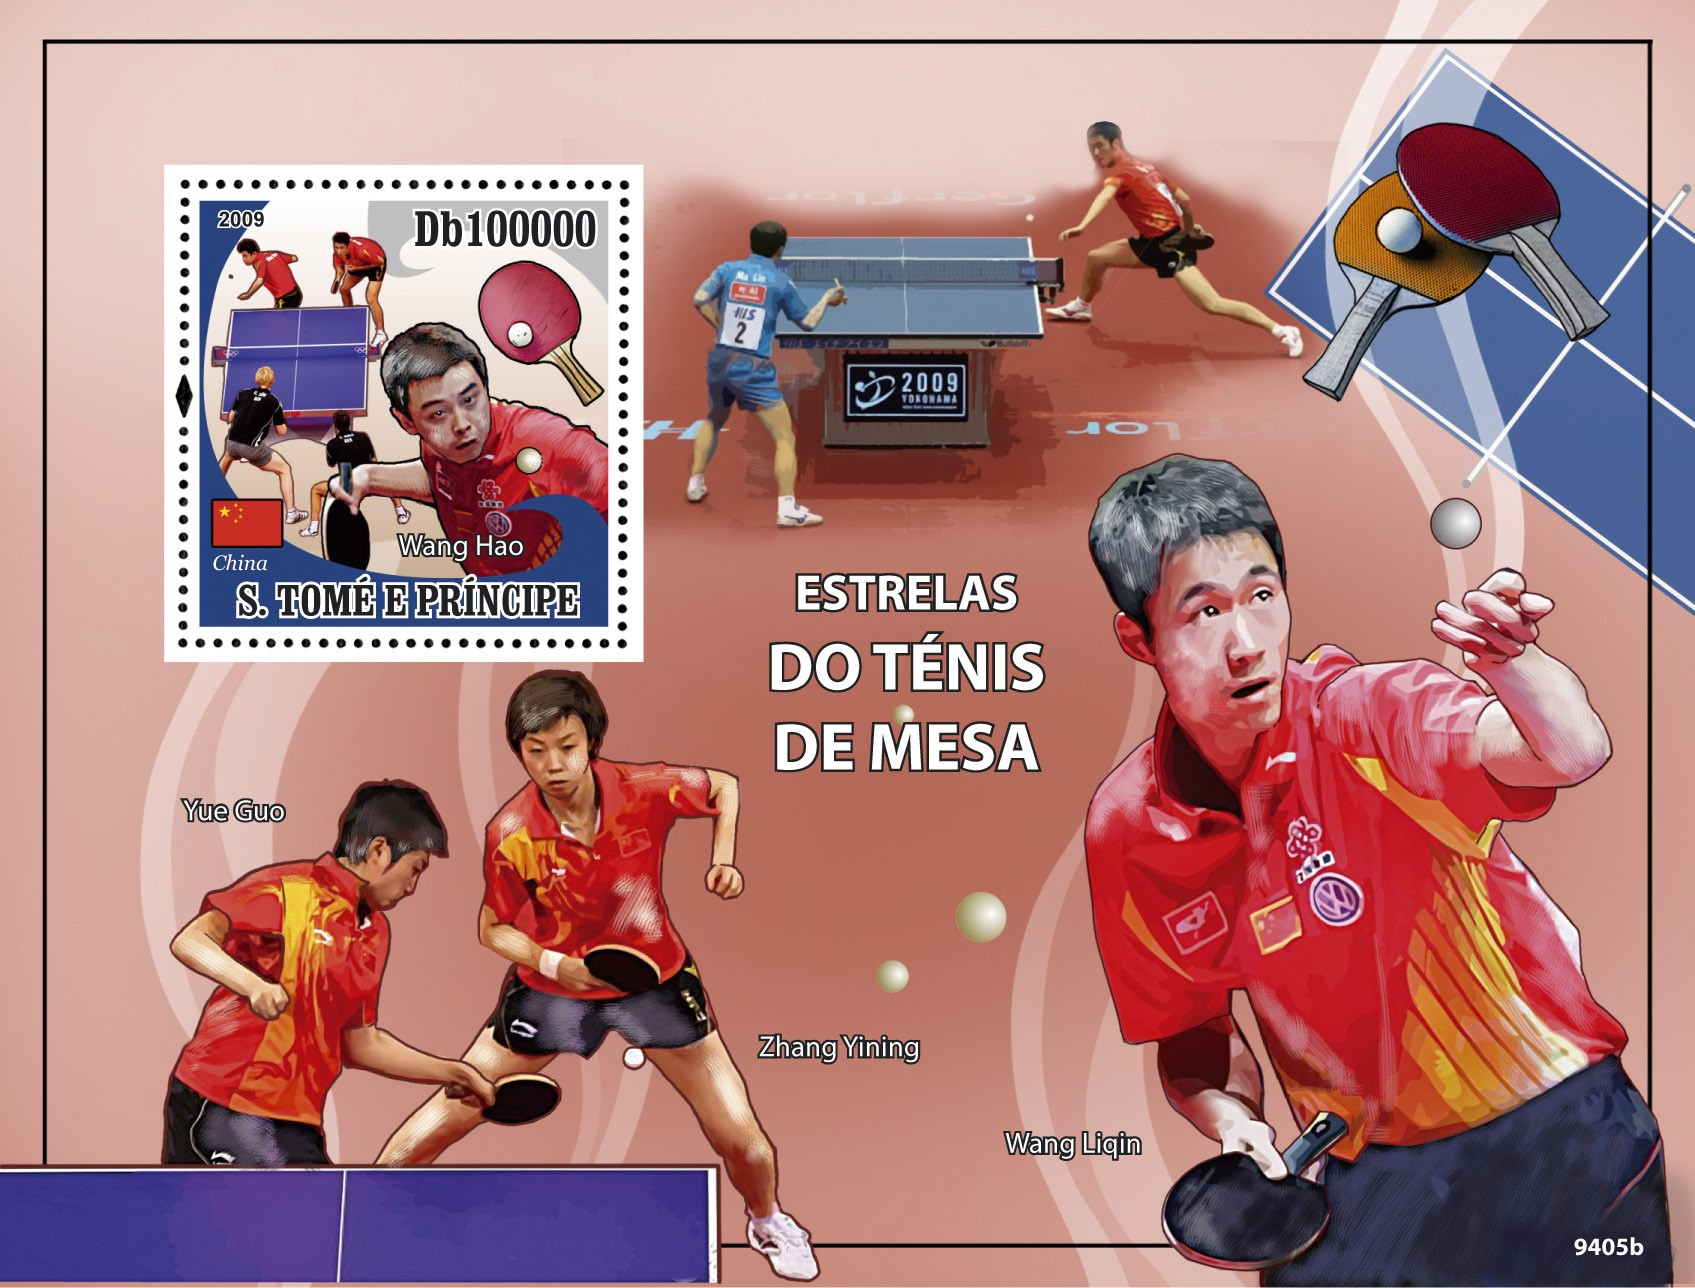 Ping Pong Stars  Wang Hao - Issue of Sao Tome and Principe postage stamps